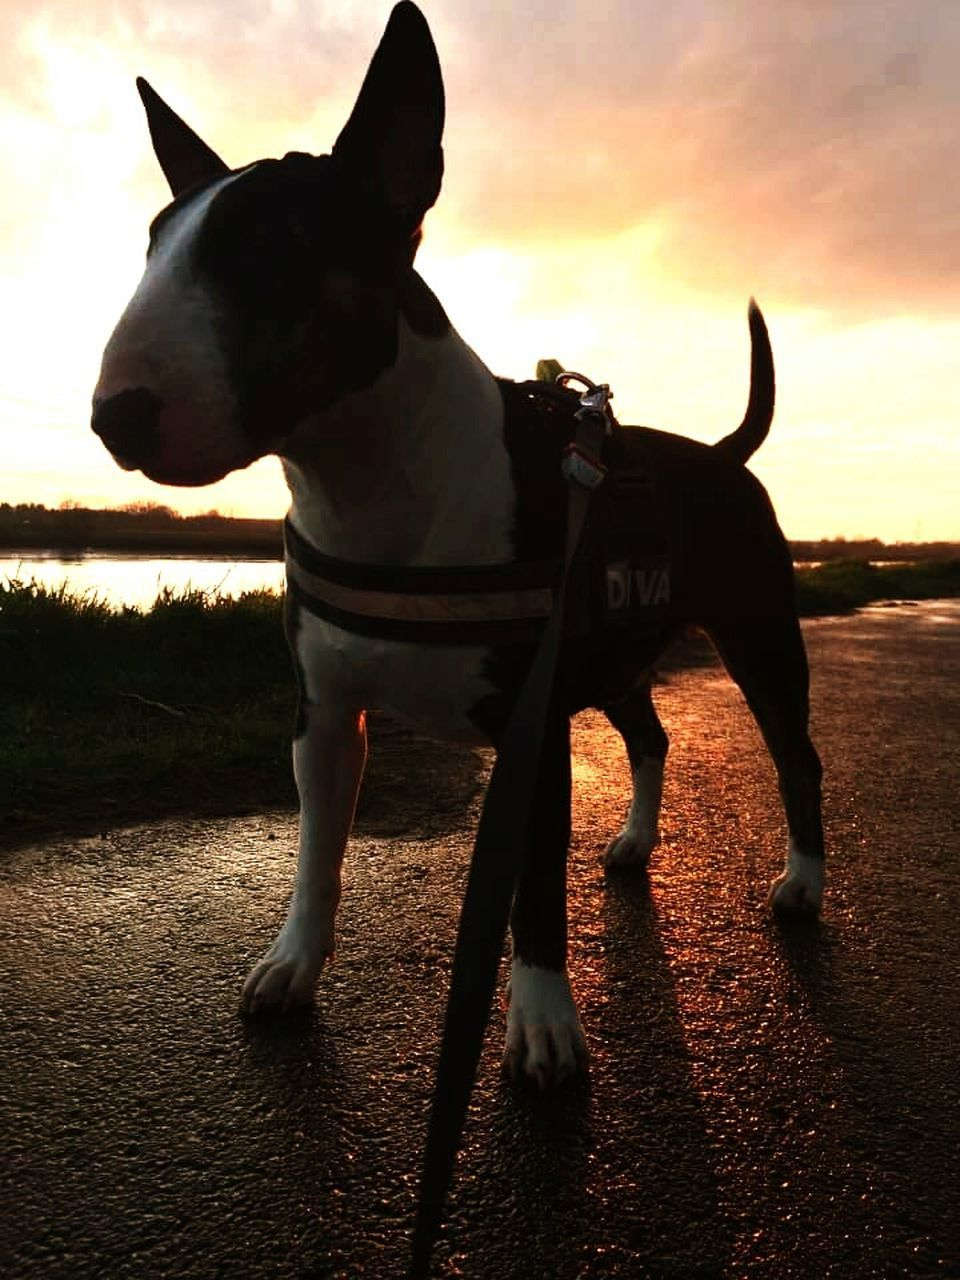 domestic animals, animal themes, mammal, one animal, dog, pets, sunset, outdoors, sky, full length, no people, nature, day